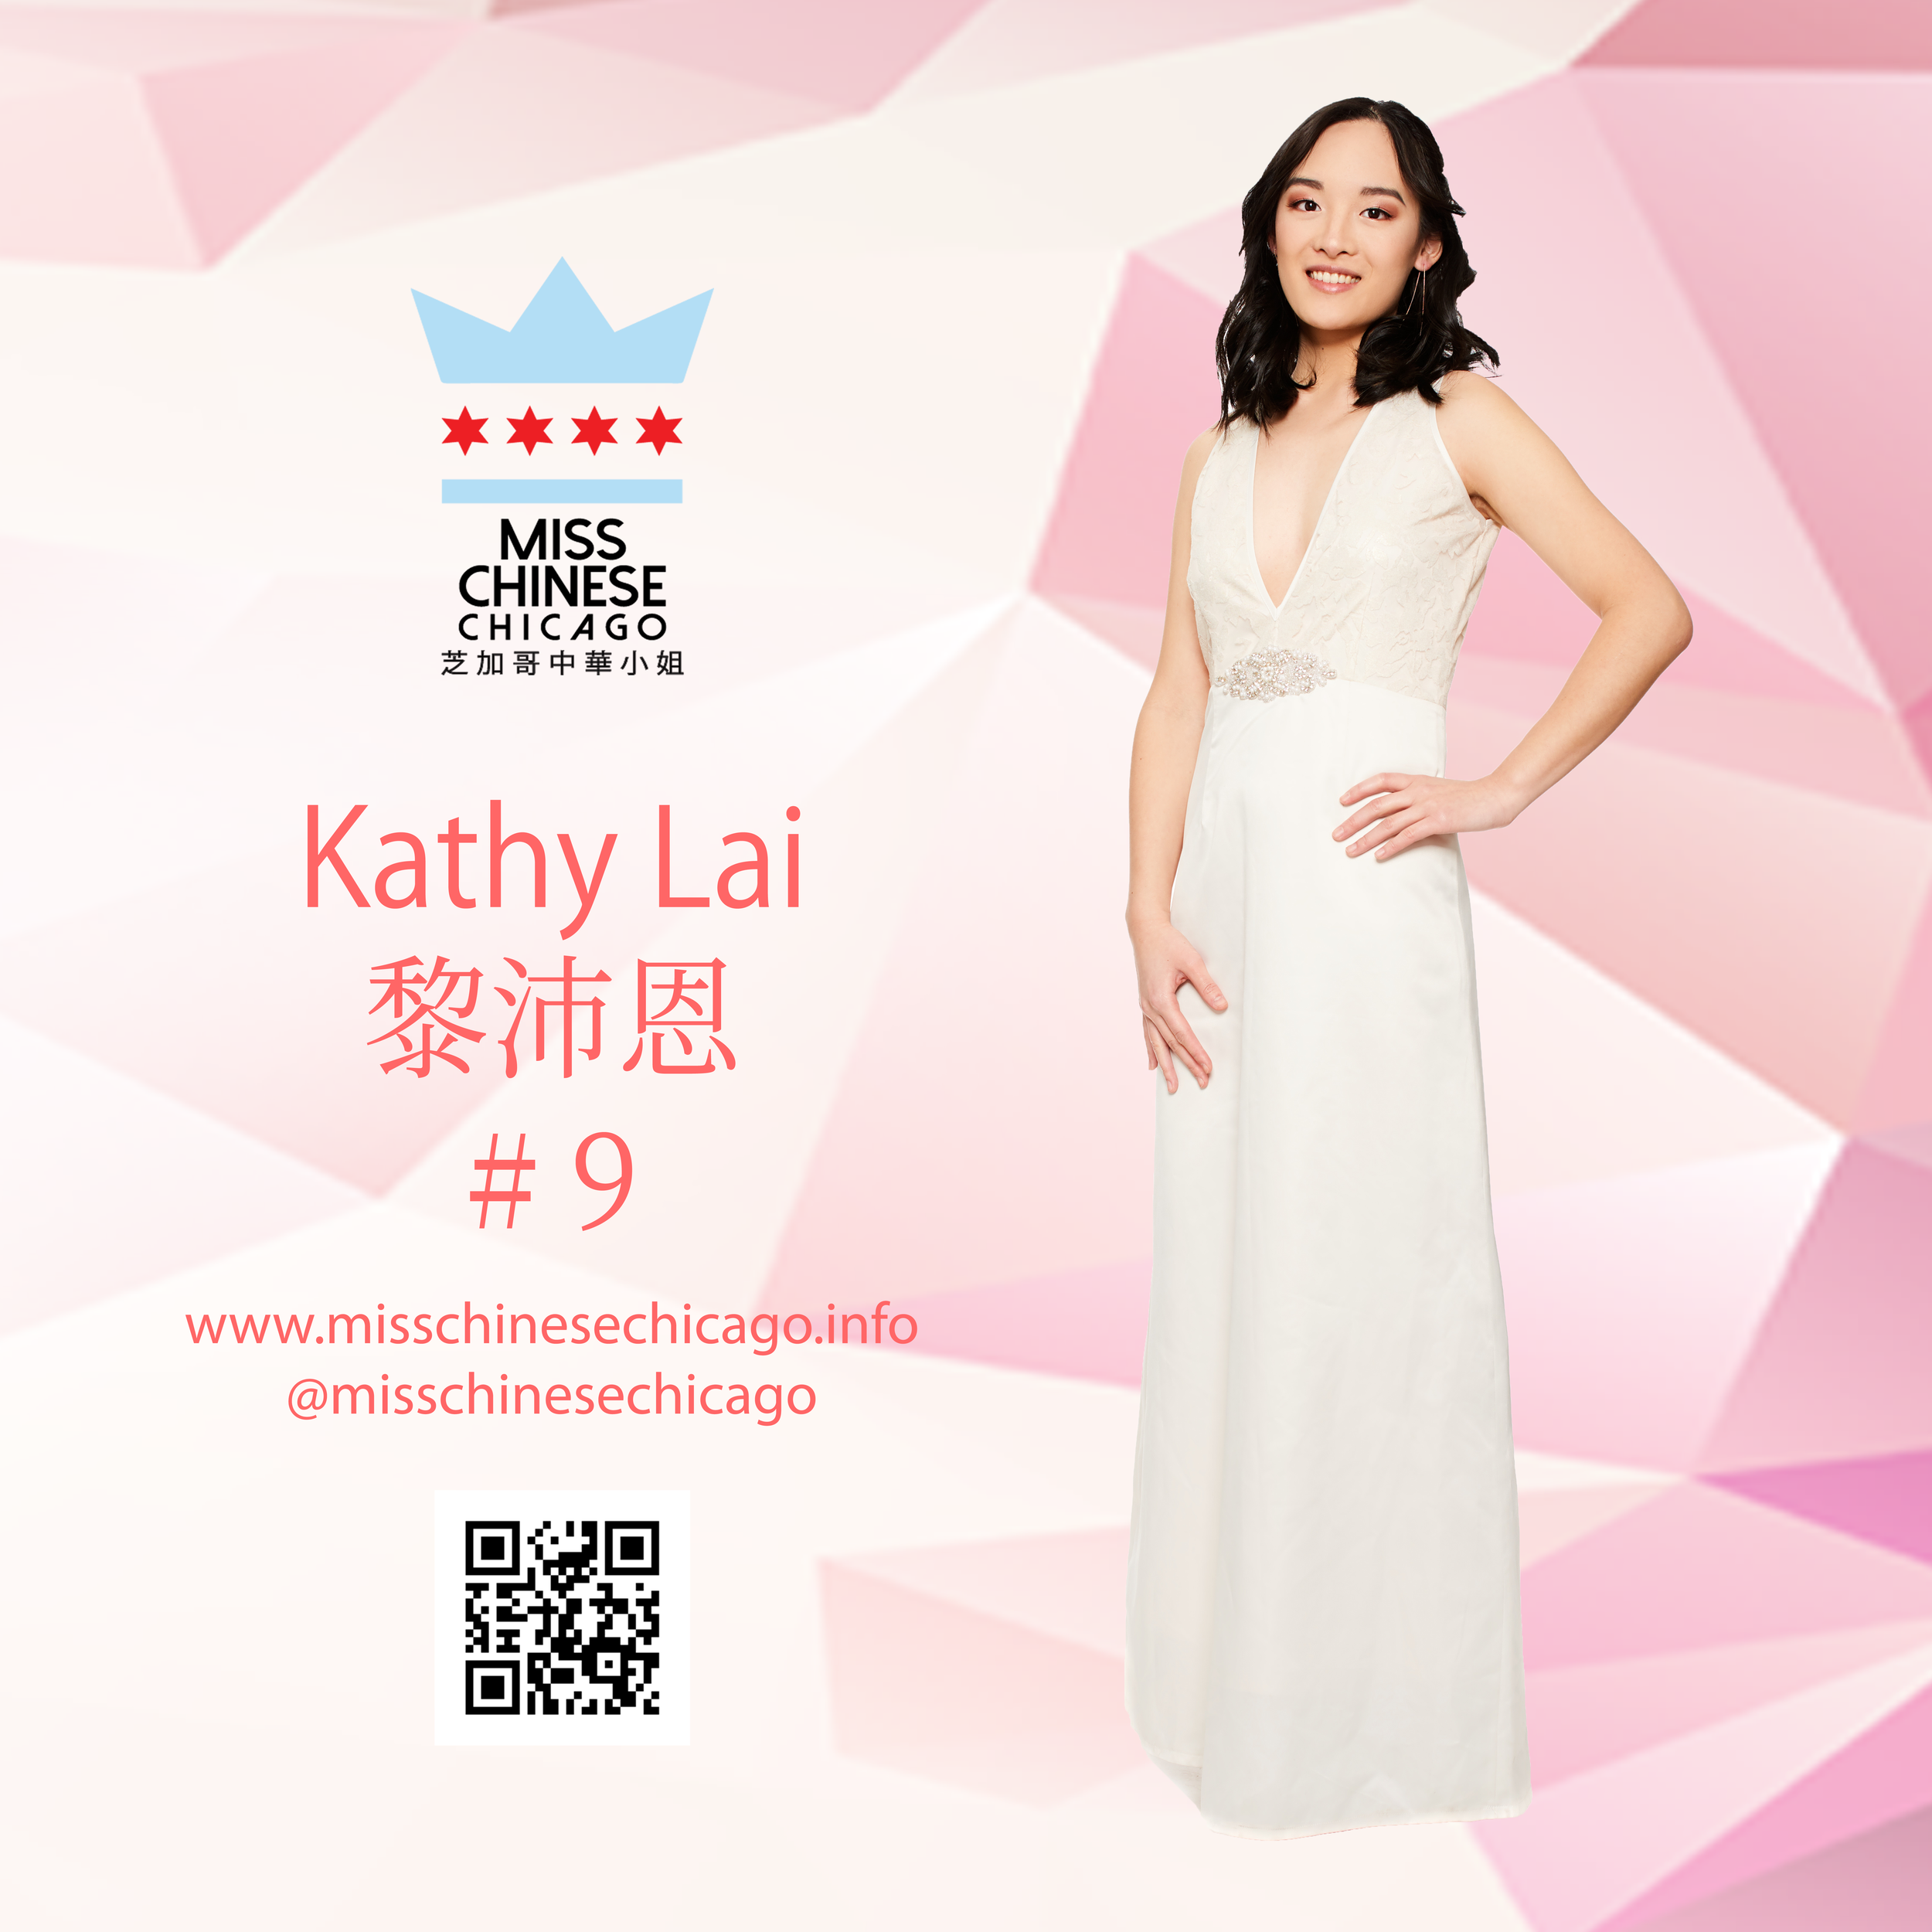 Kathy_Lai_Evening_IG.png